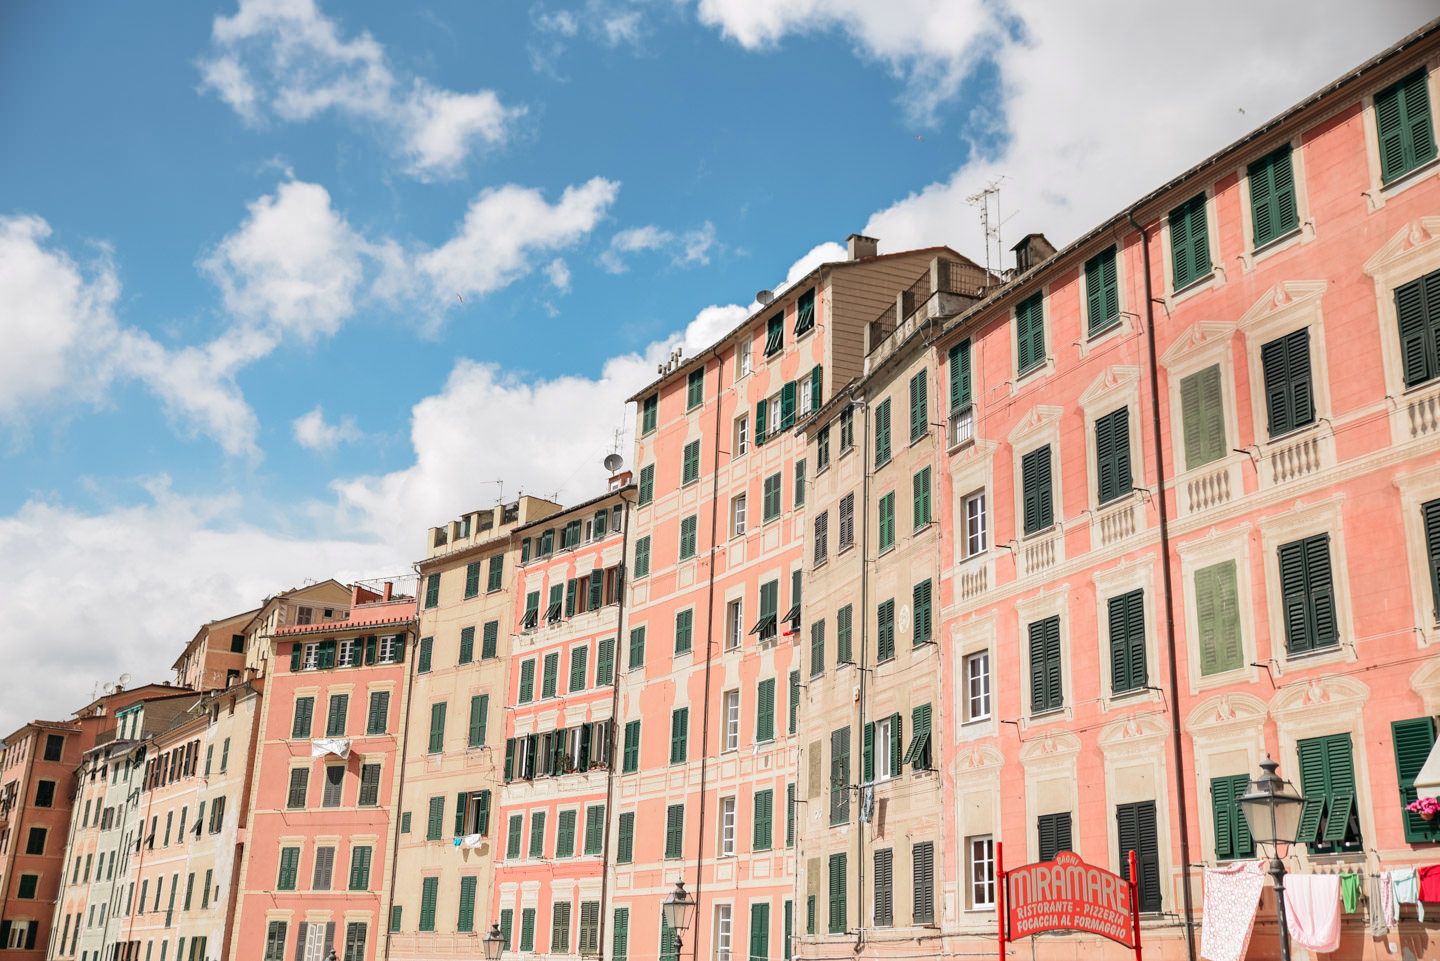 Blog-Mode-And-The-City-Lifestyle-Italie-Bocadasse-Camogli-Sestri-Levante-17